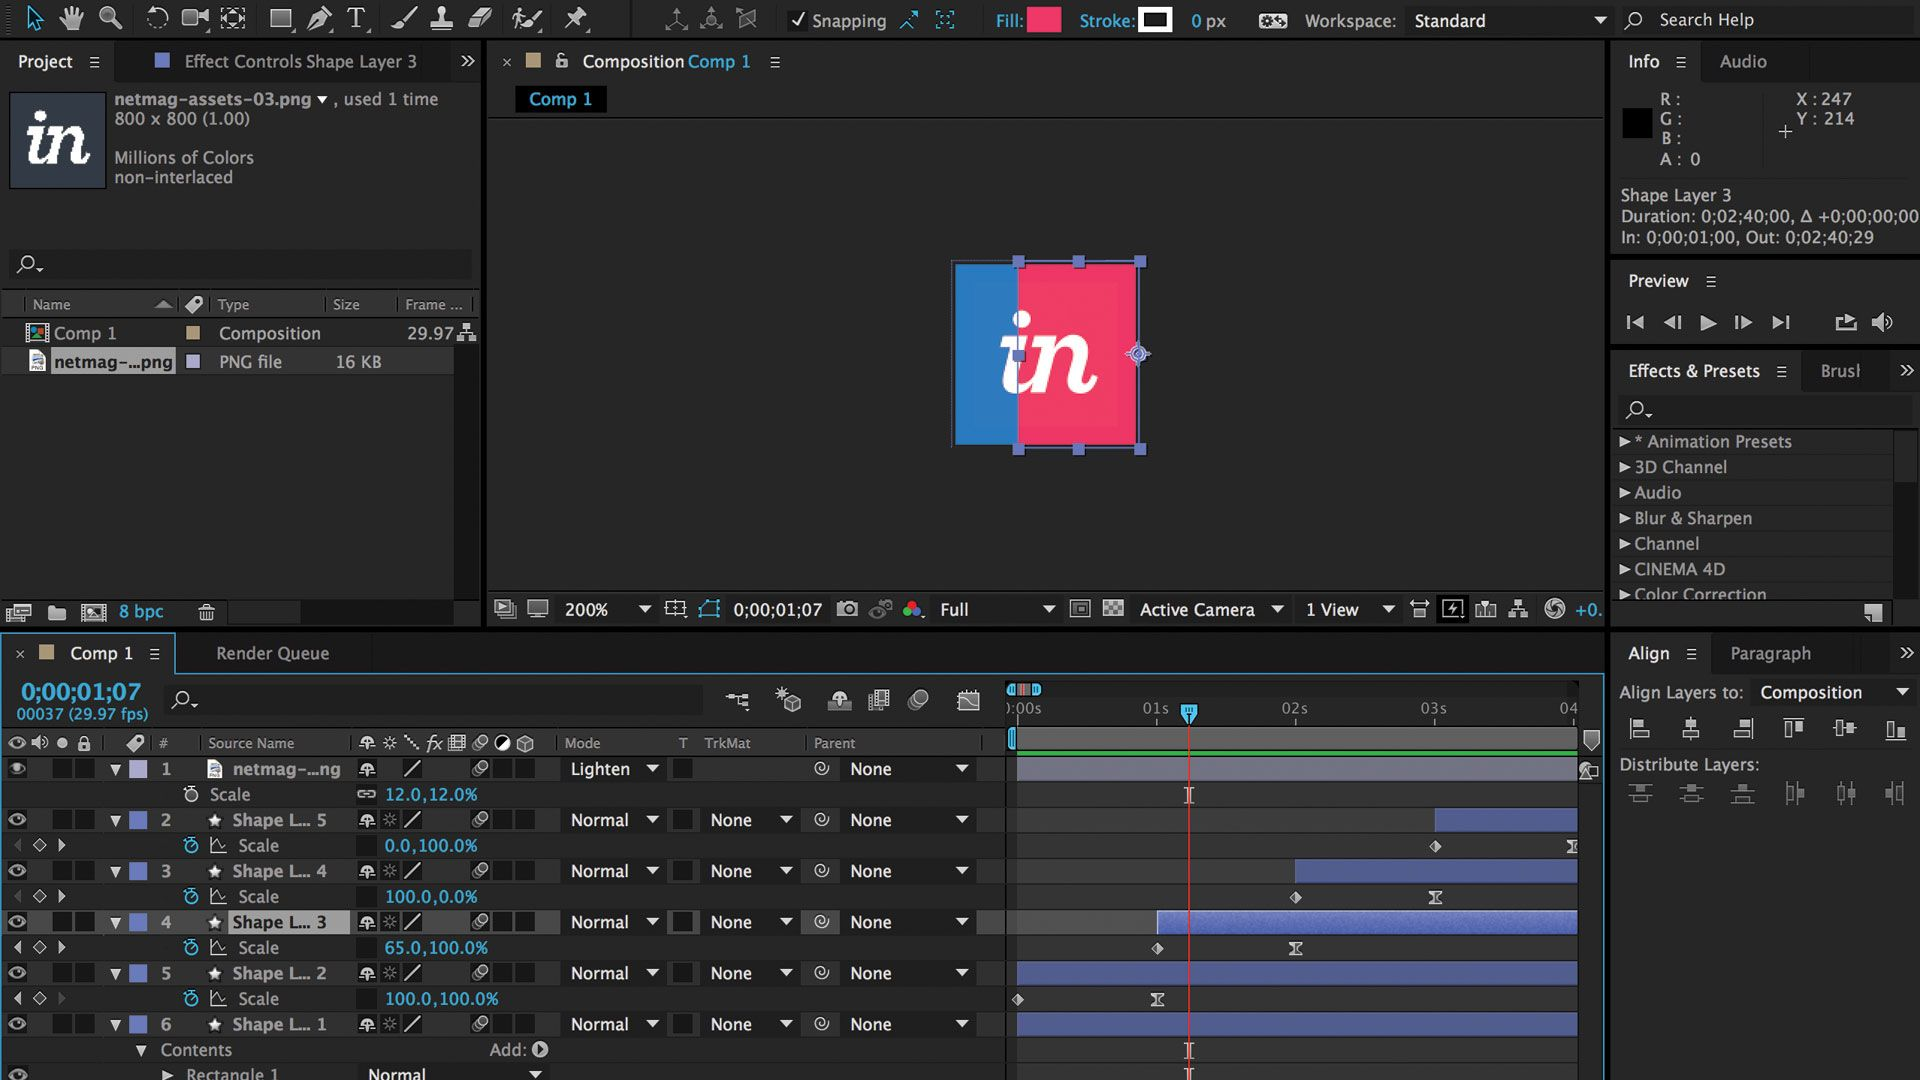 InVision's Andy Orsow explains how to make a custom loading animation in After Effects, and turn it into a lightweight GIF.